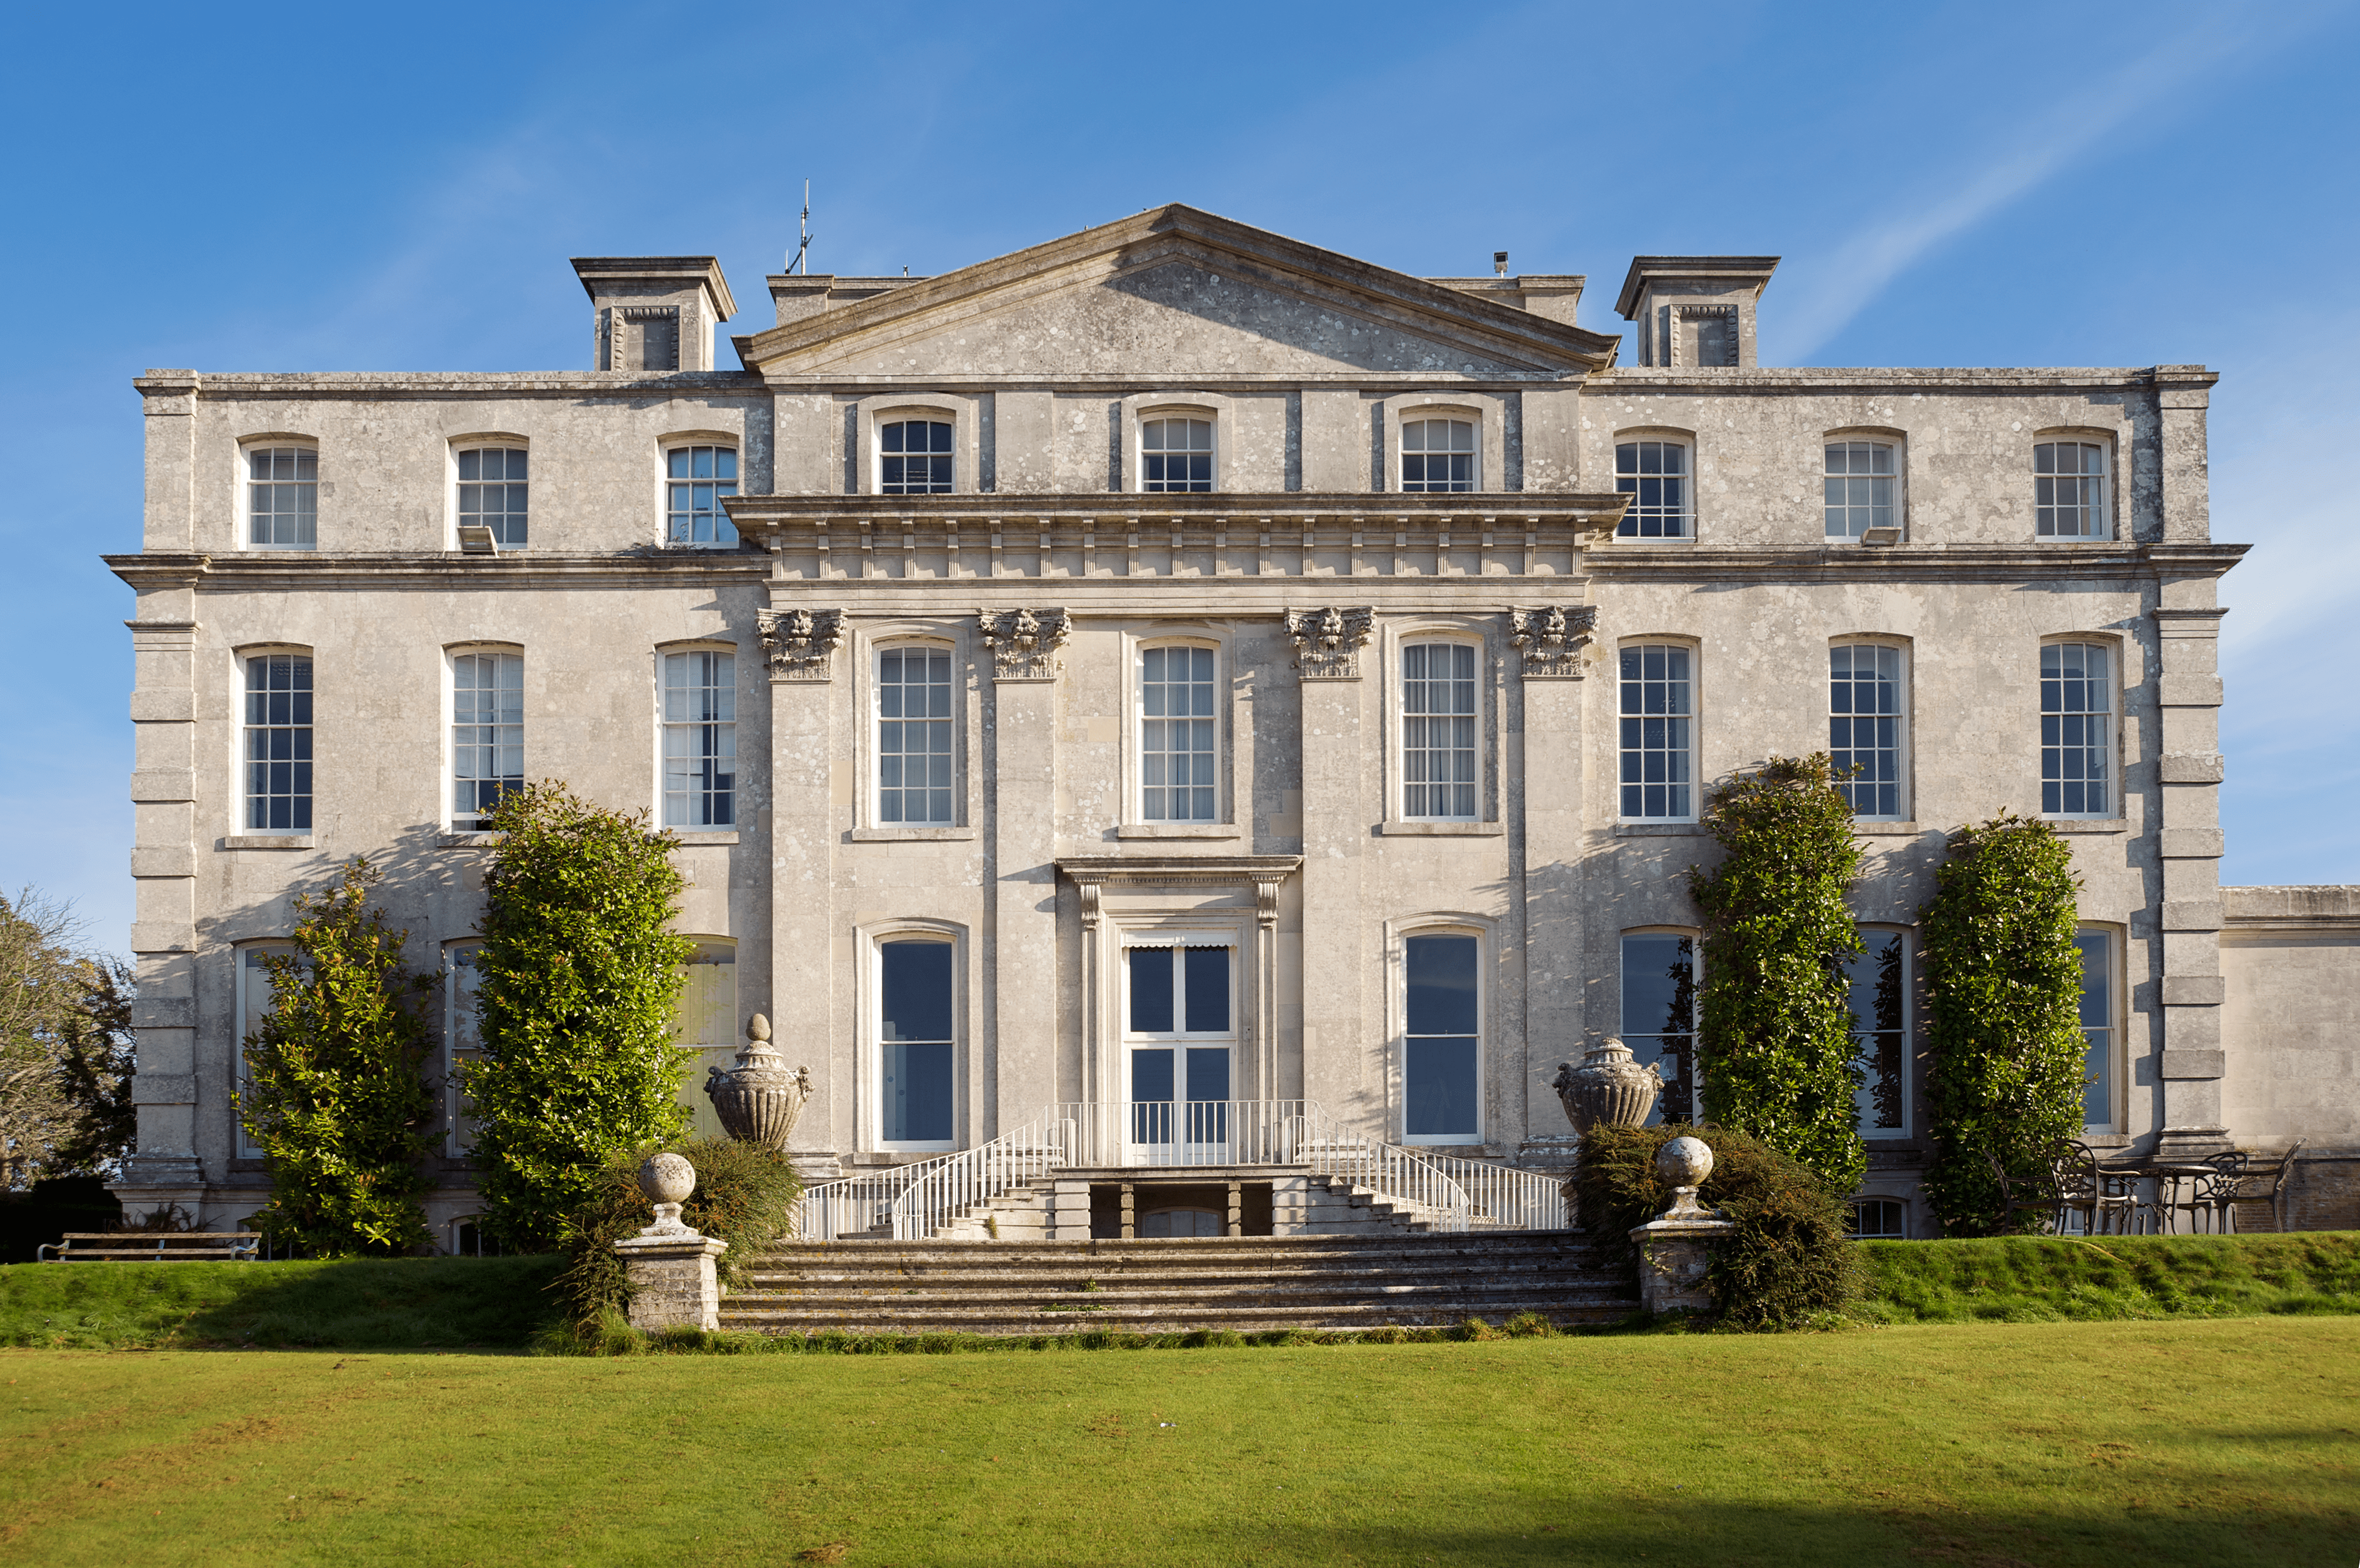 Information about Kingston Maurward College